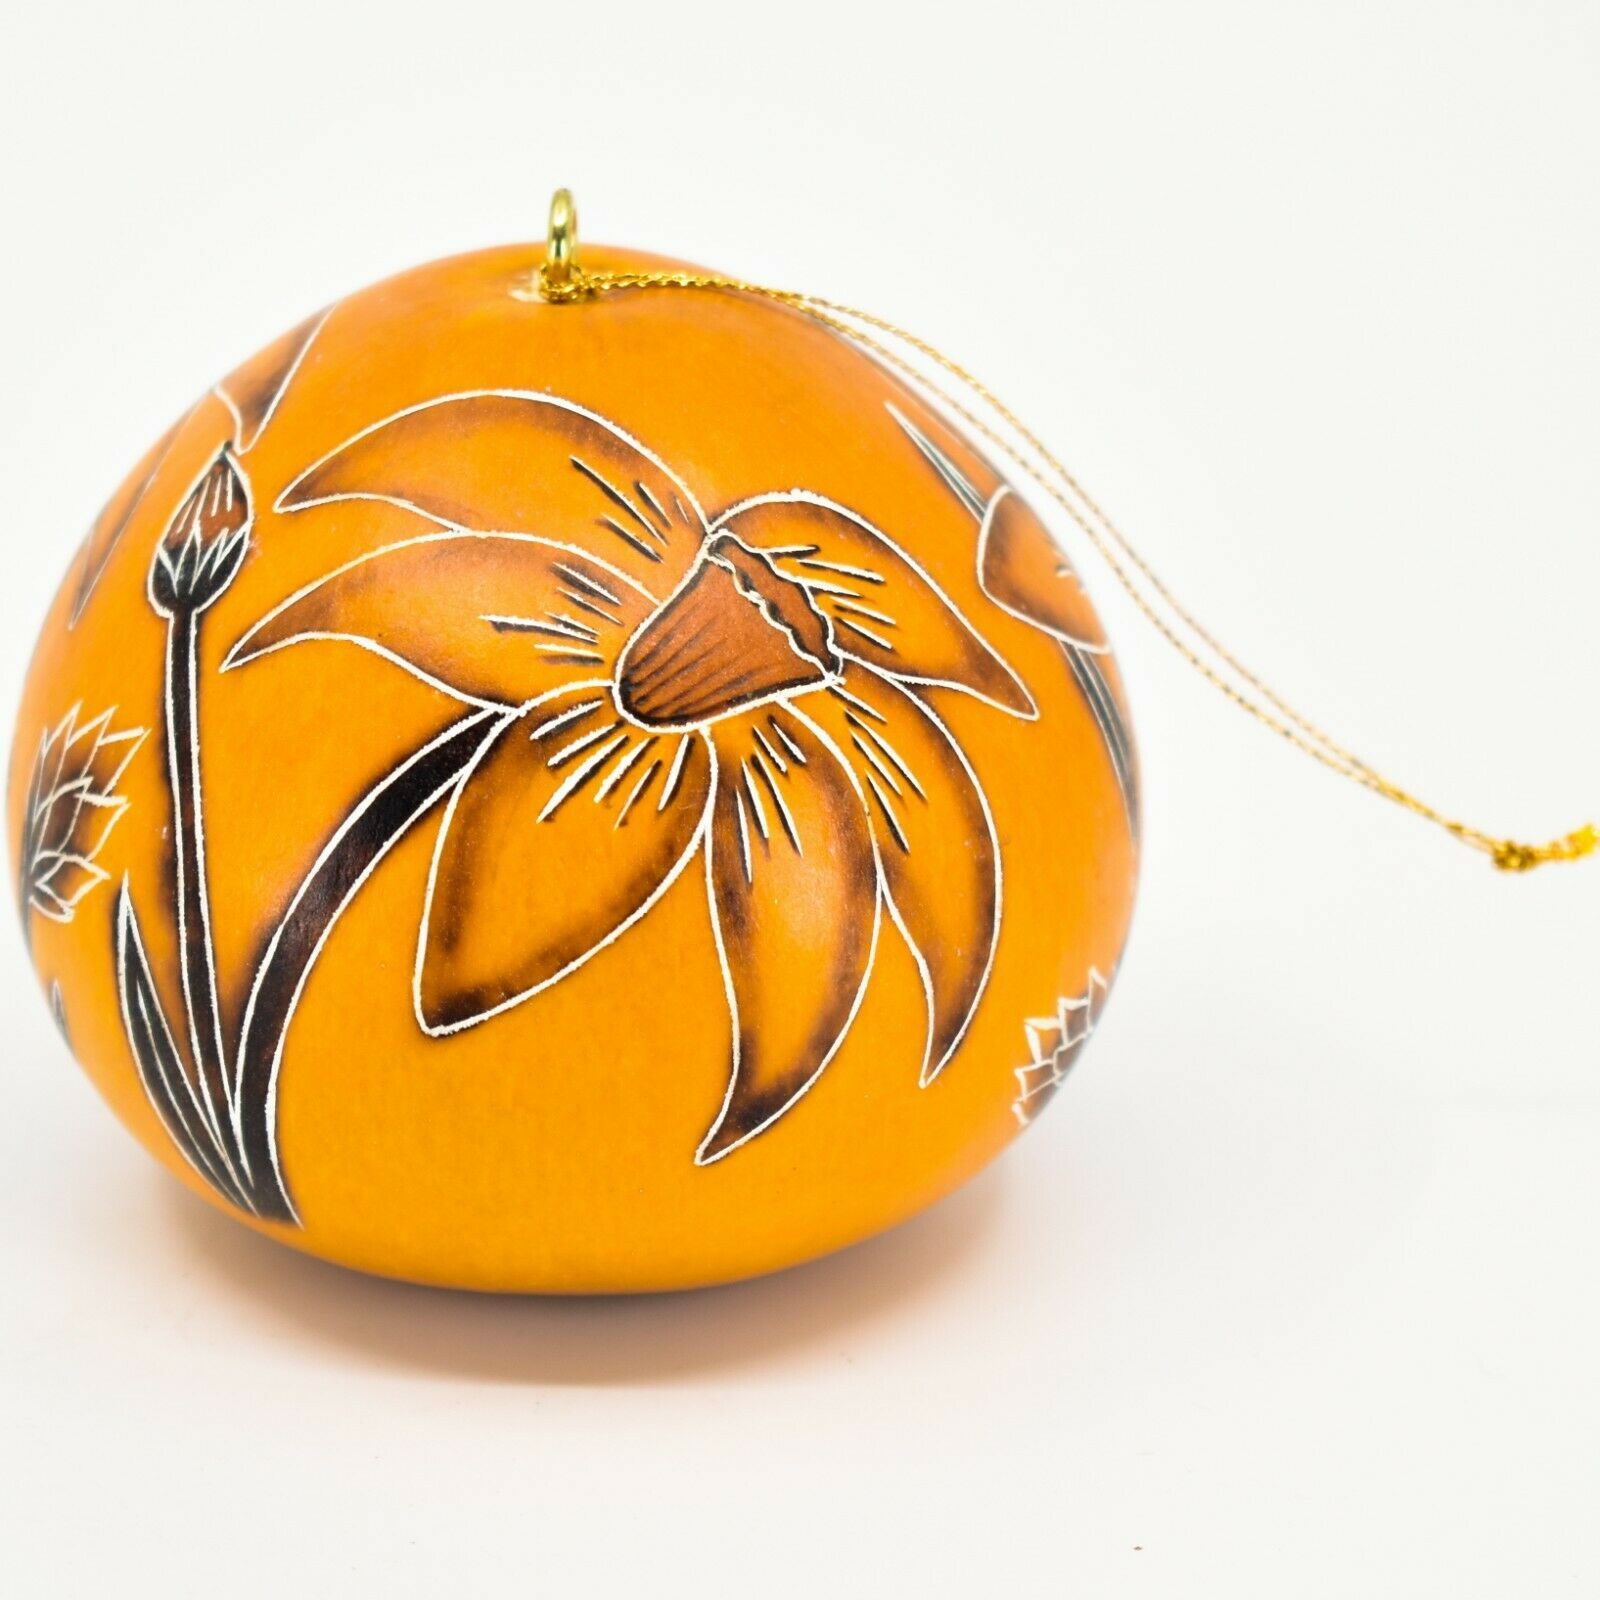 Handcrafted Carved Gourd Art Spring Daffodil Flower Floral Ornament Made in Peru